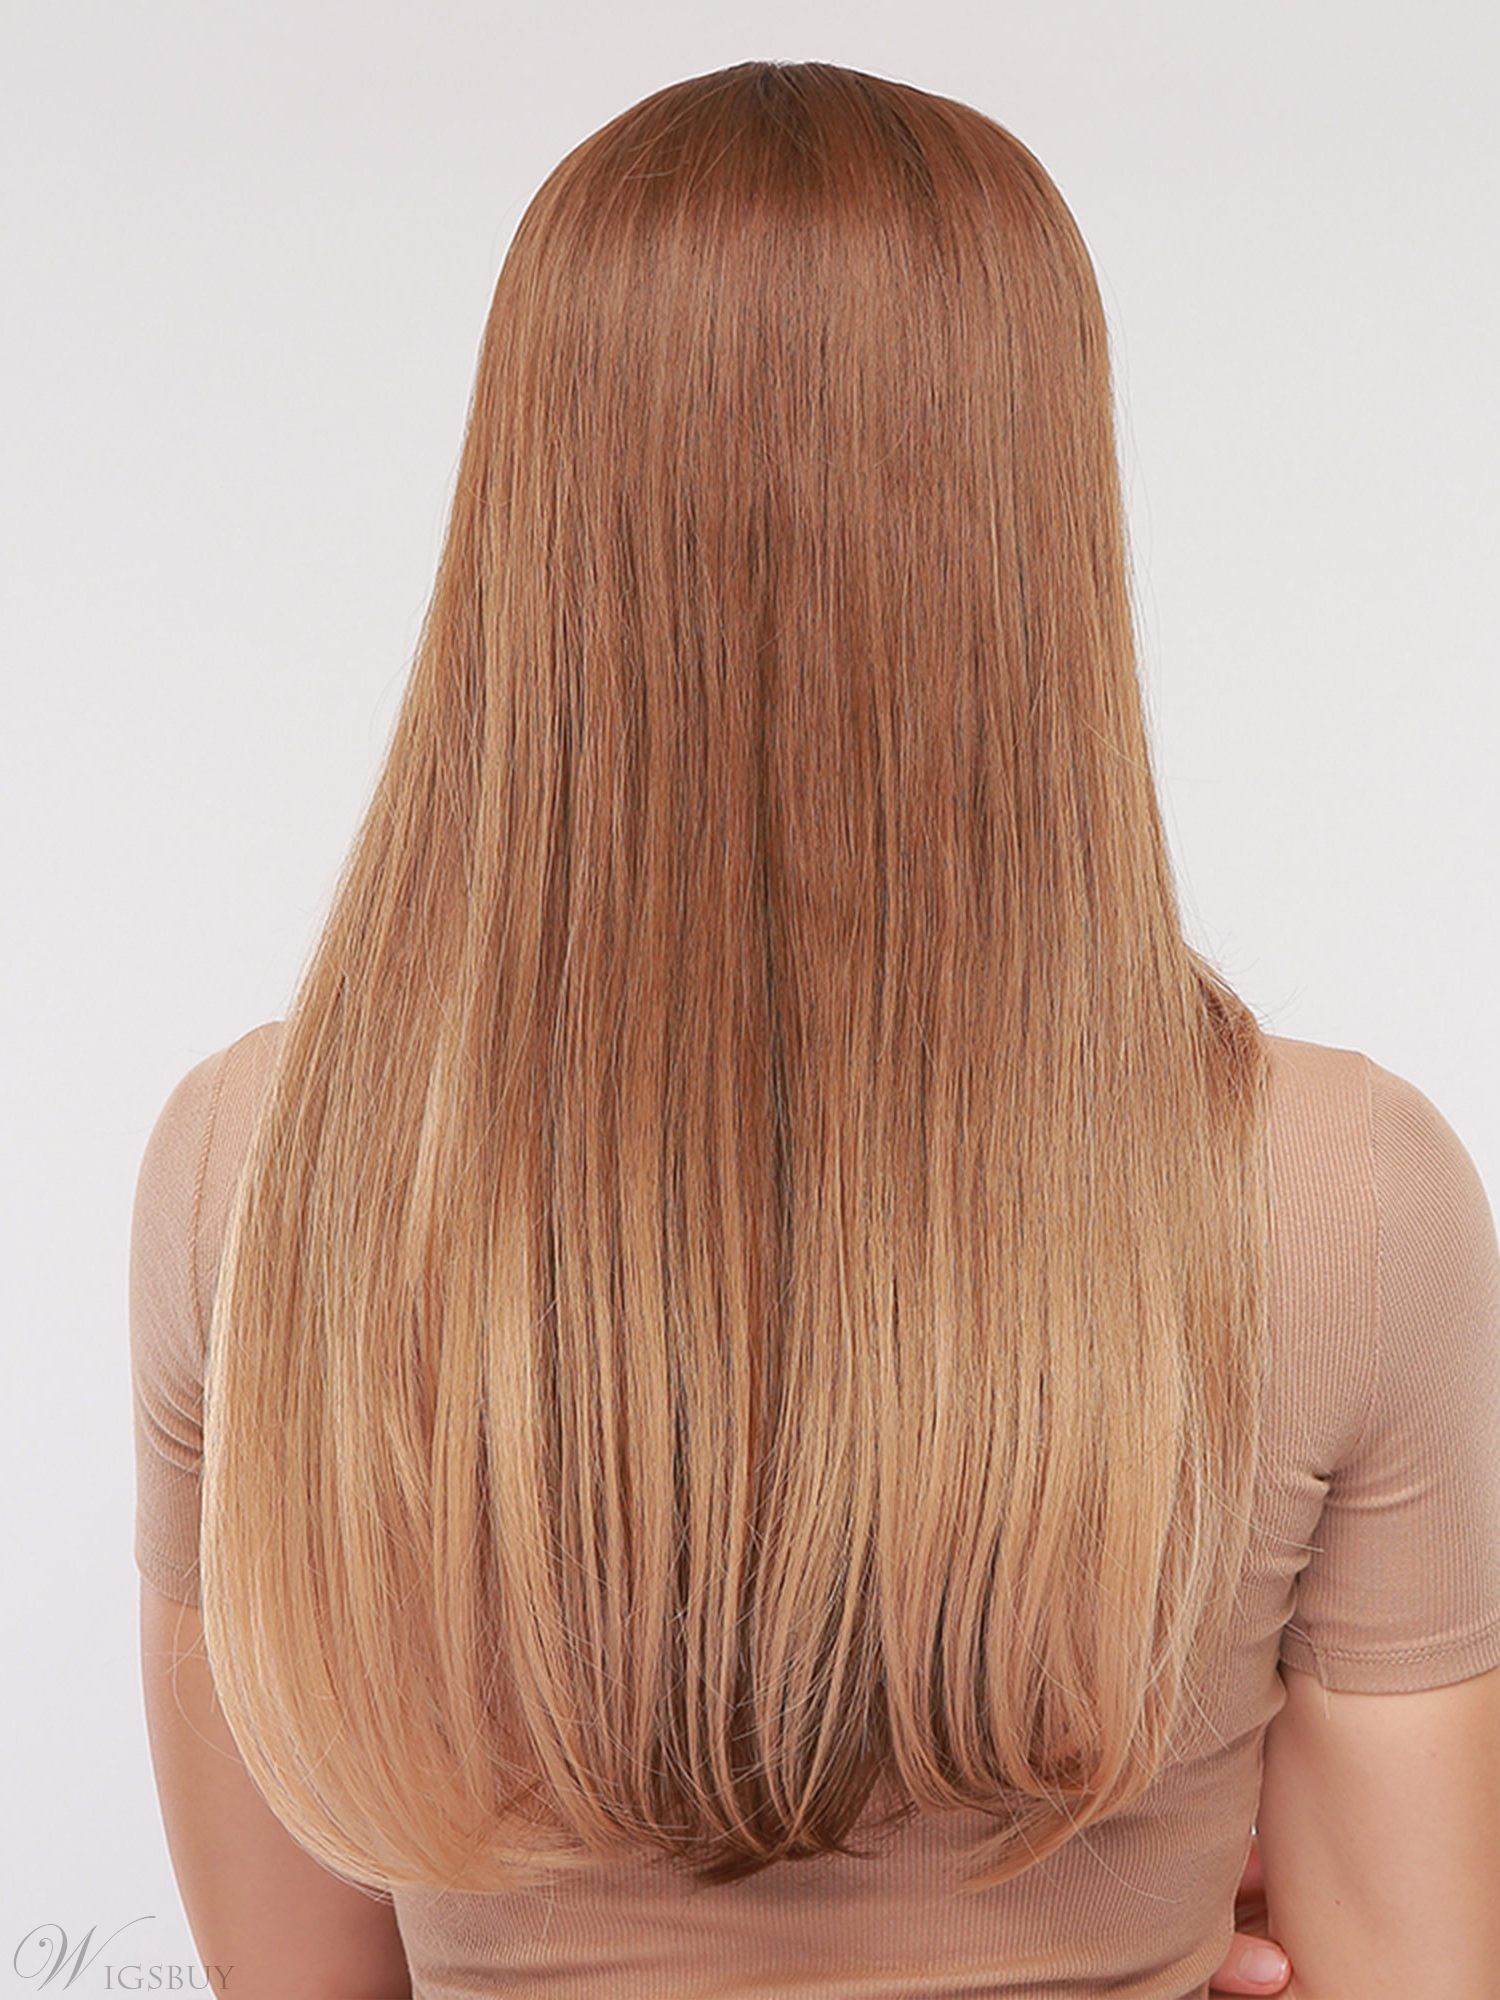 Middle Part Long Natural Straight Synthetic Hair Capless Women Wig 24 Inches